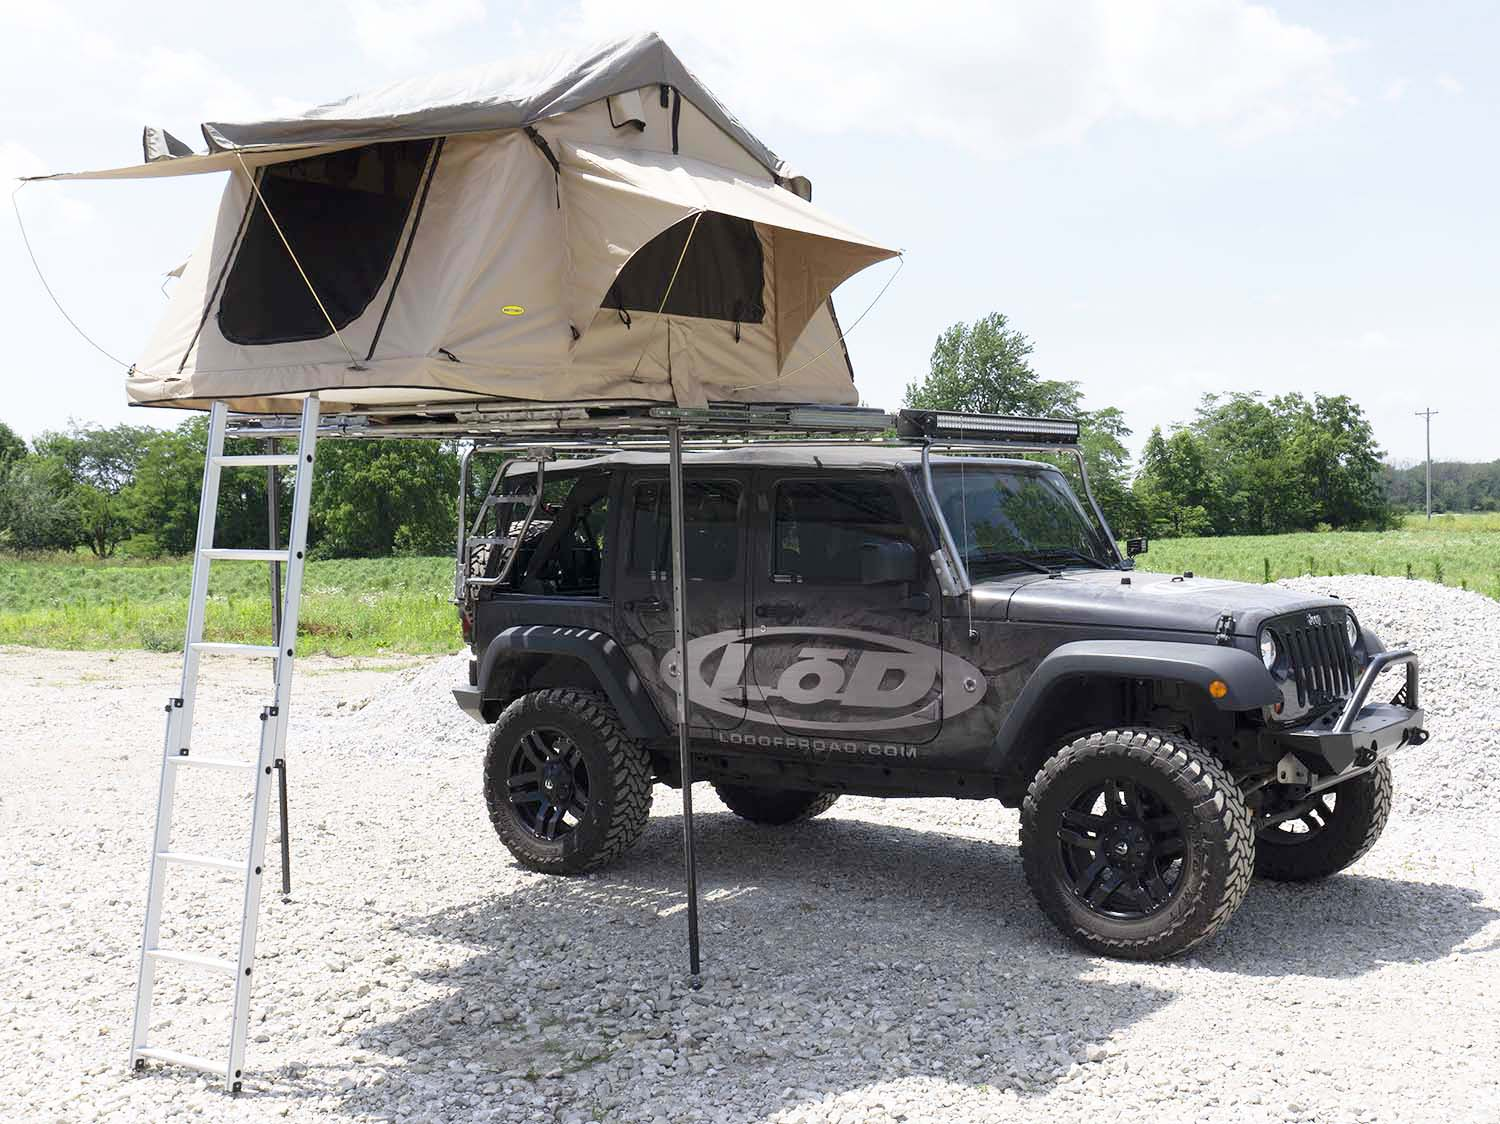 Roof Rack With Tent.jpg